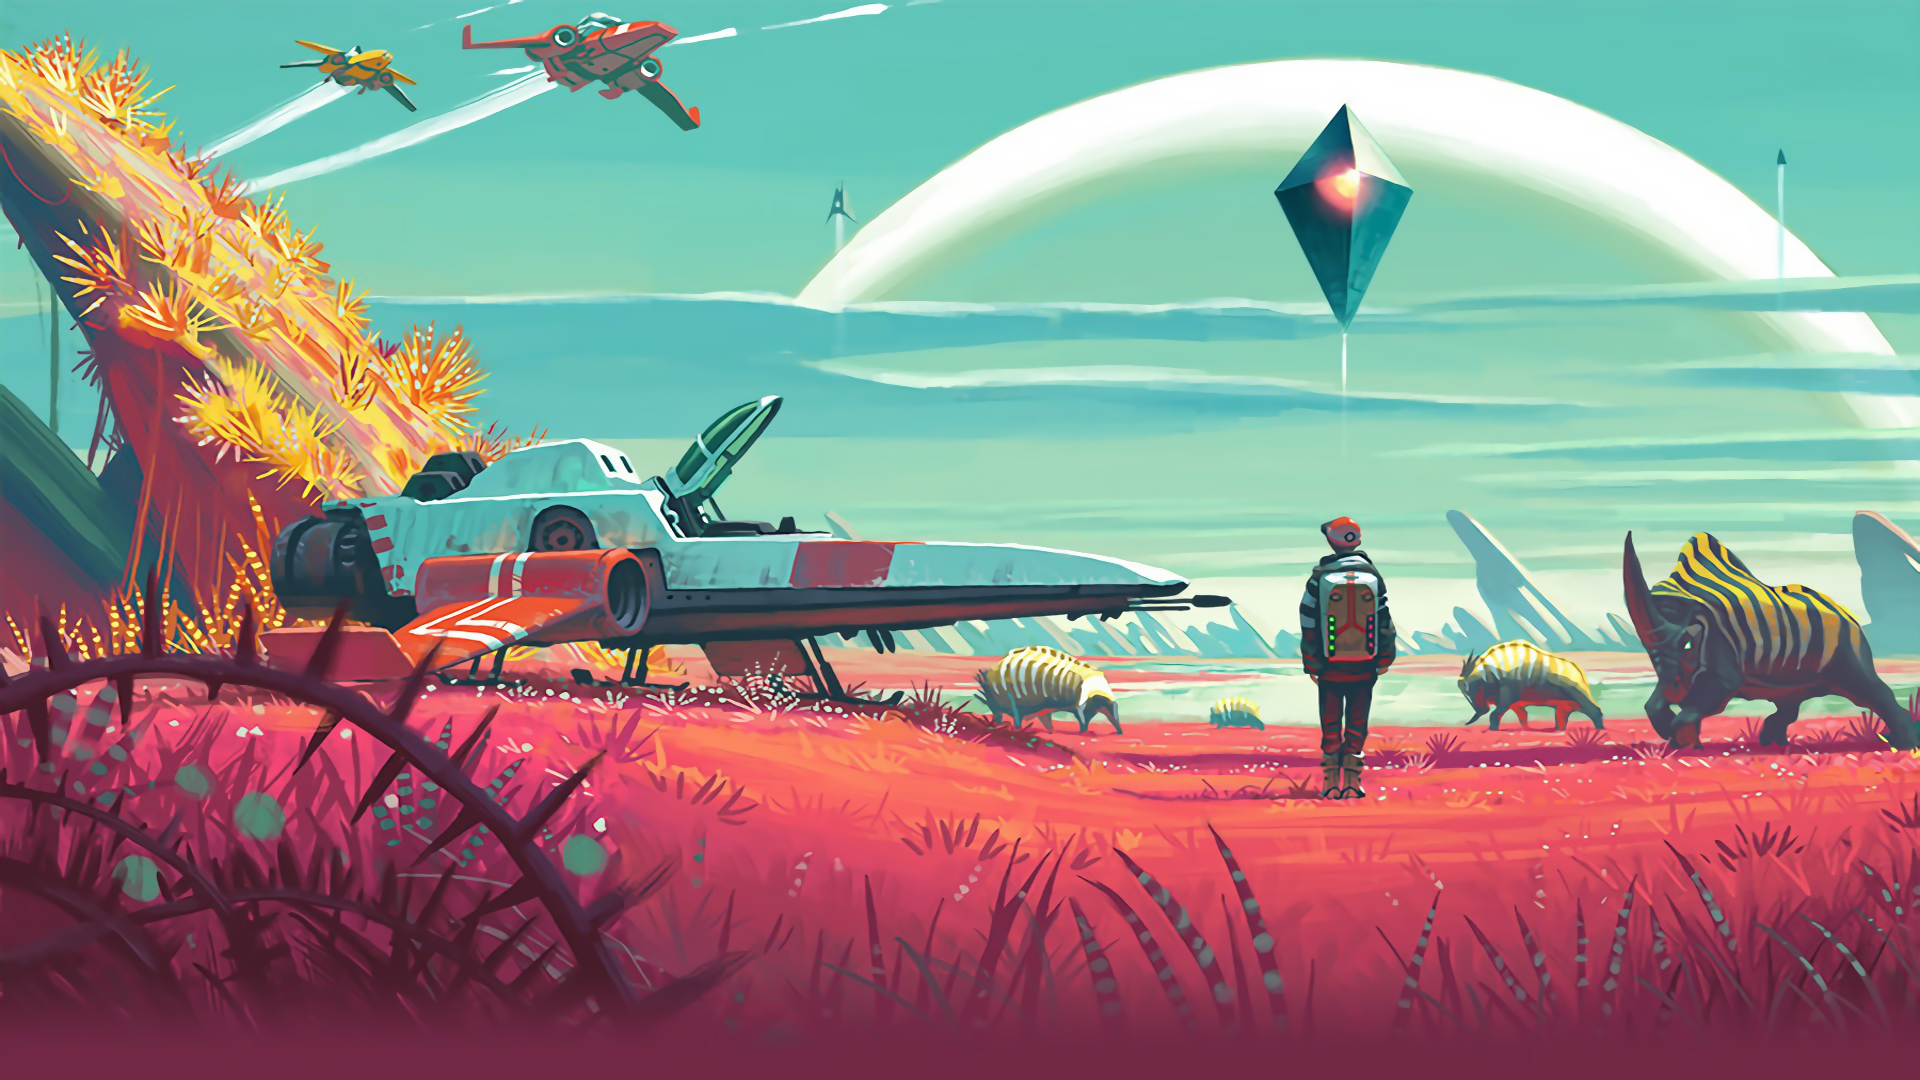 No Man S Sky Hd Wallpaper No Mans Sky Wallpaper Hd 292641